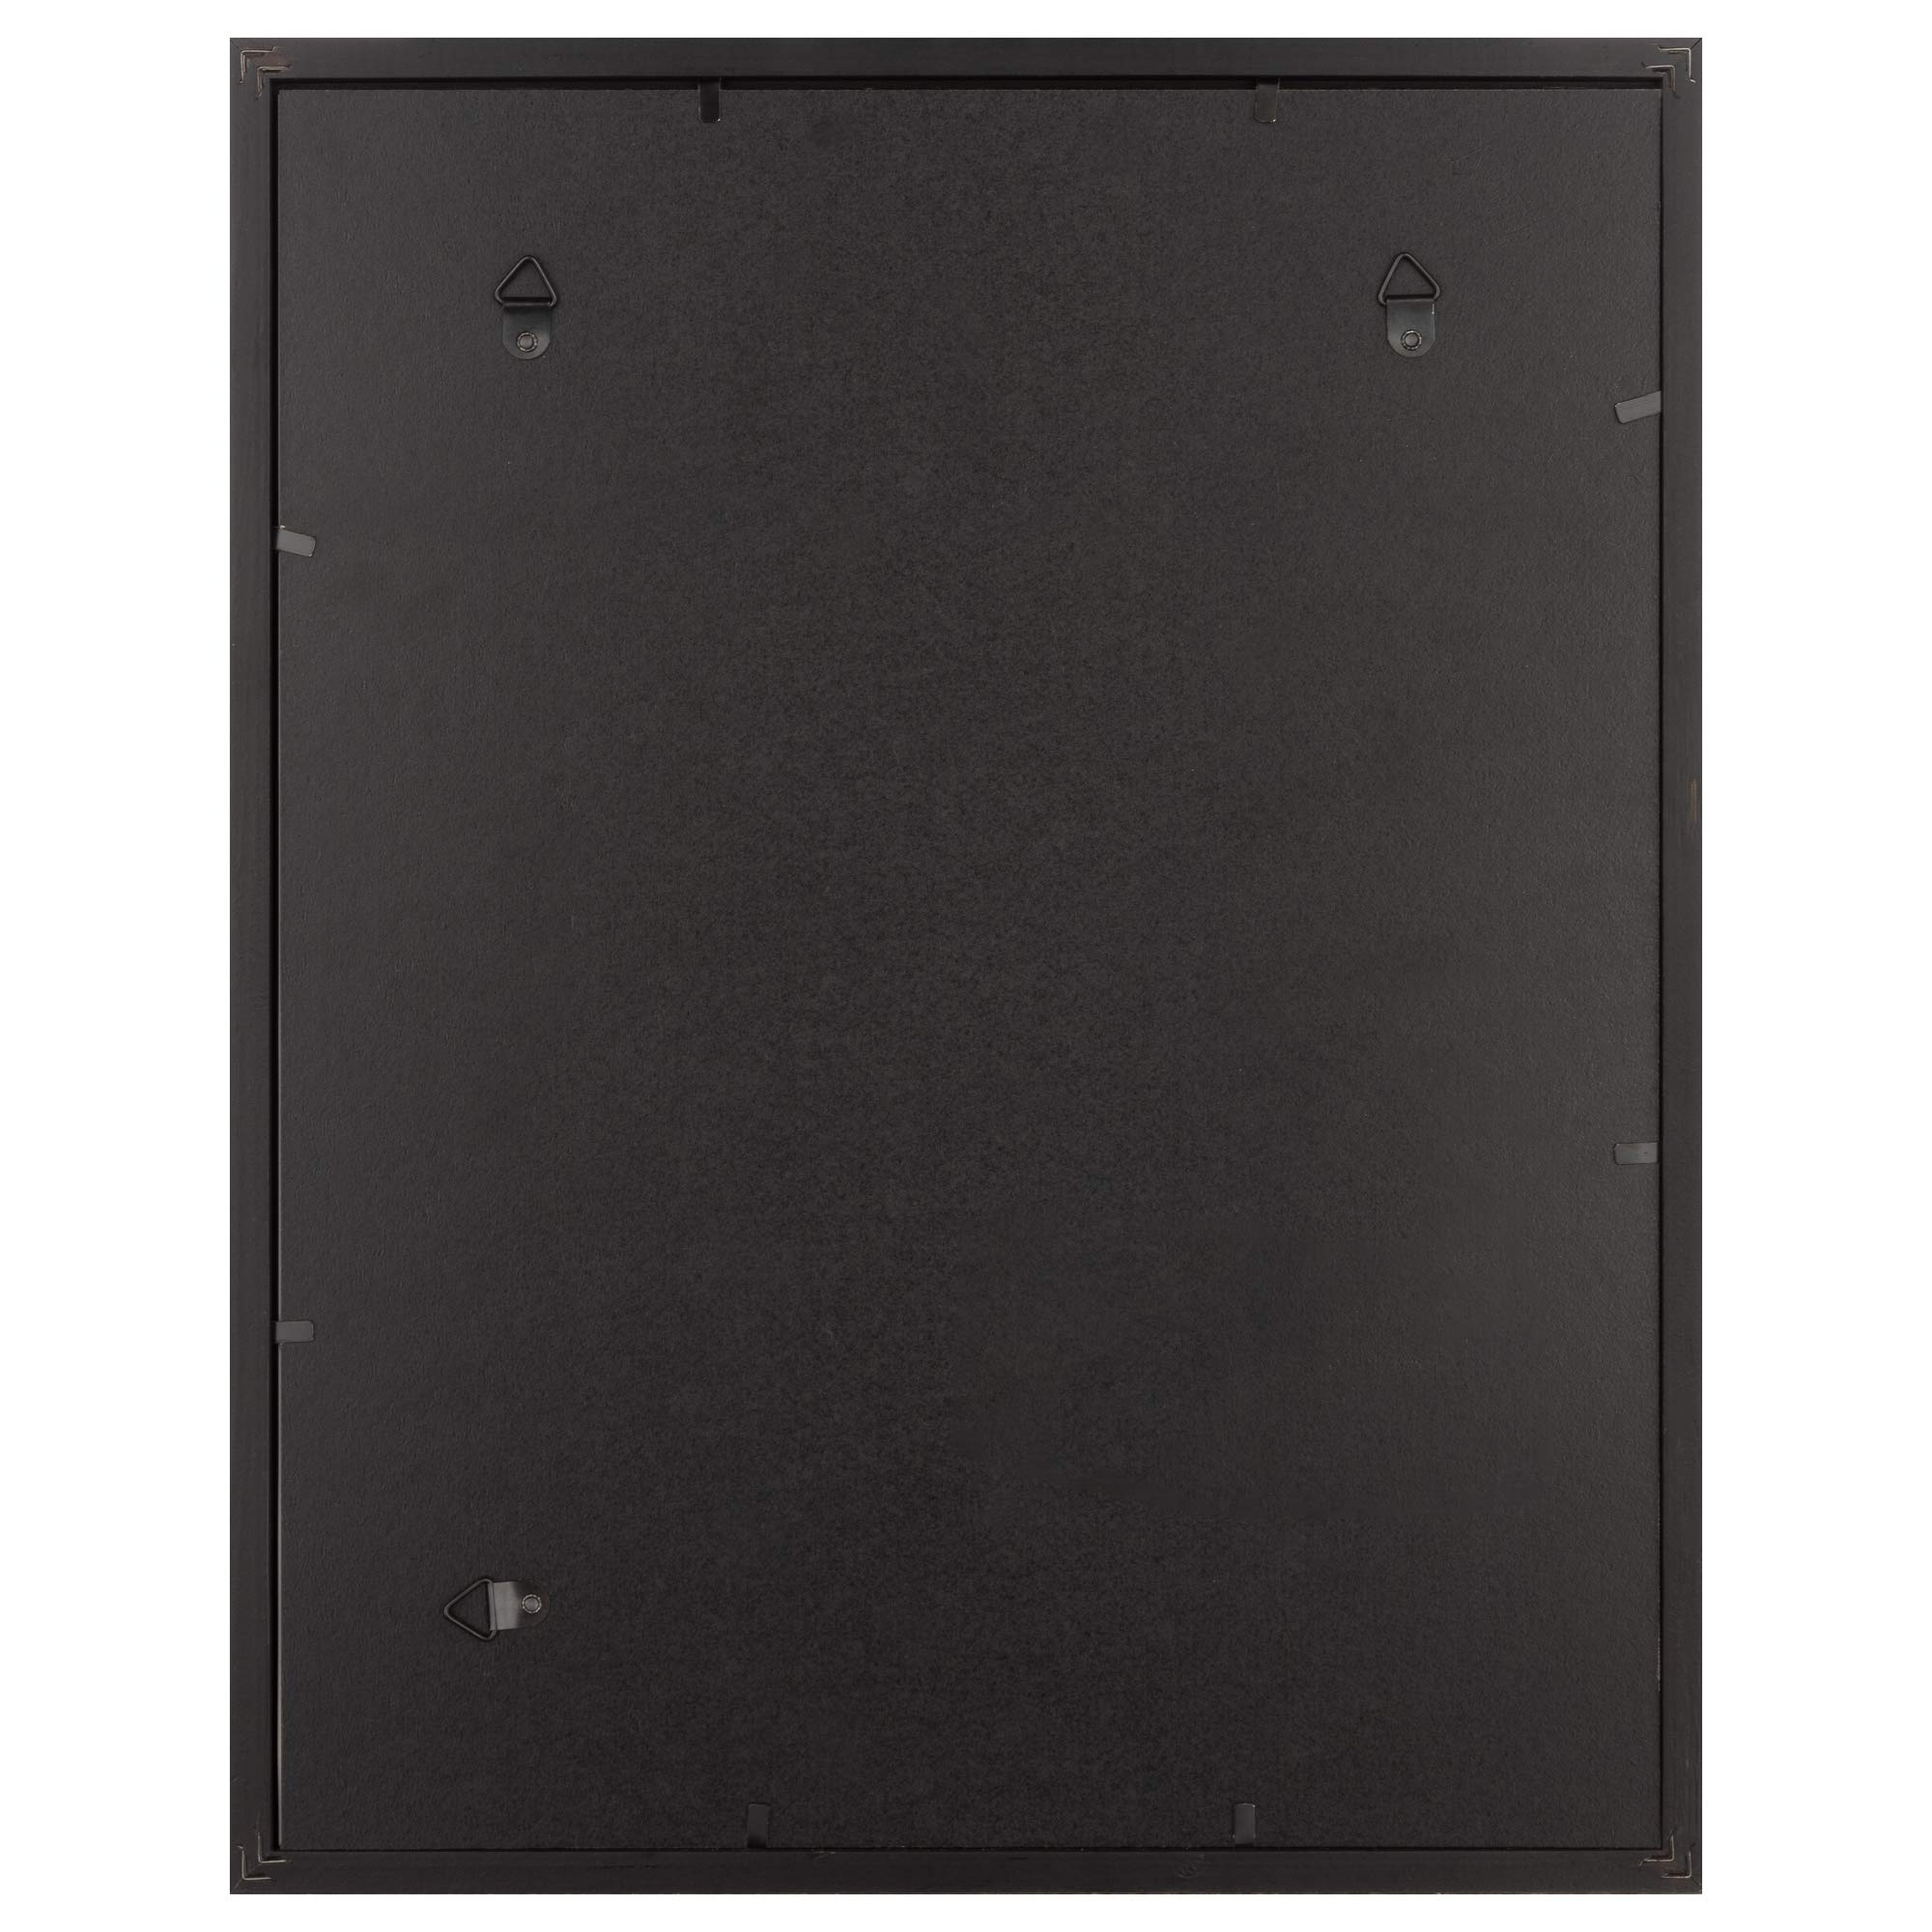 Snap 16x20 Black Wall Picture Frame with Single White Mat for 11x14 Picture by Snap (Image #4)